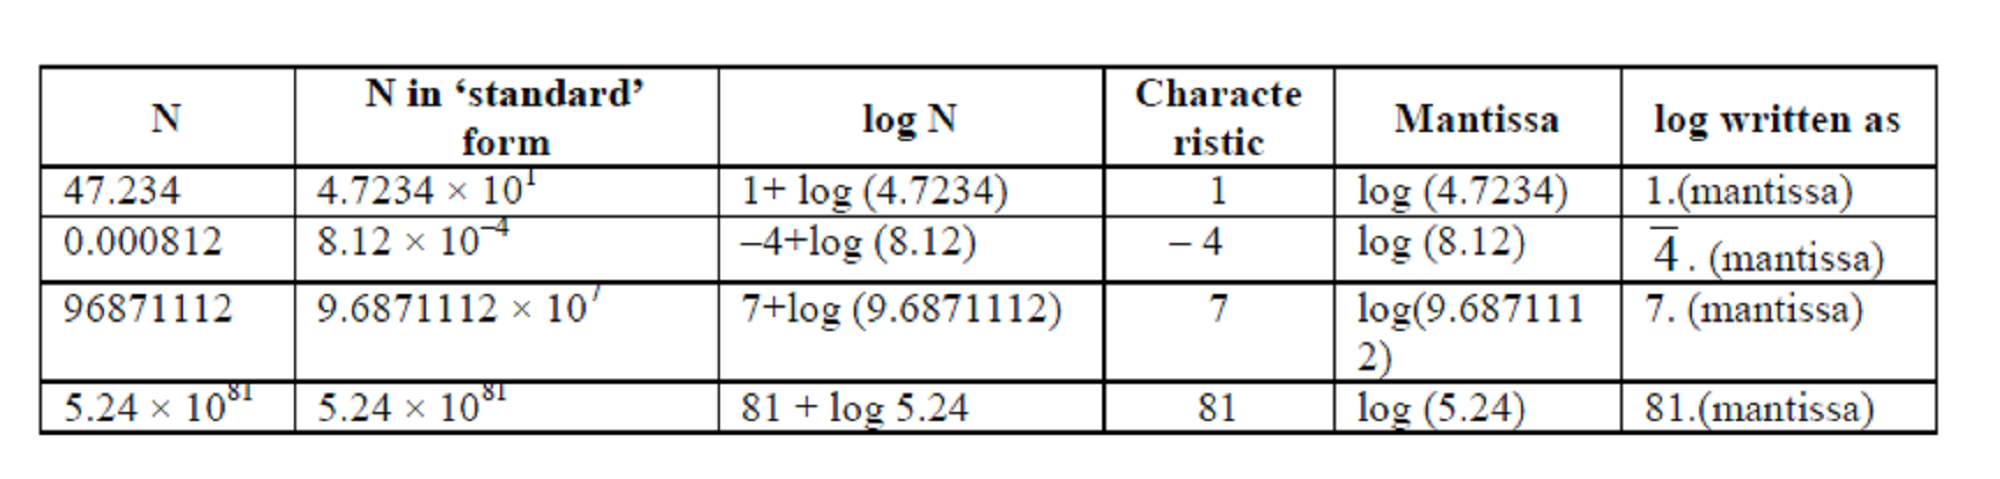 Logarithmic Calculations Table